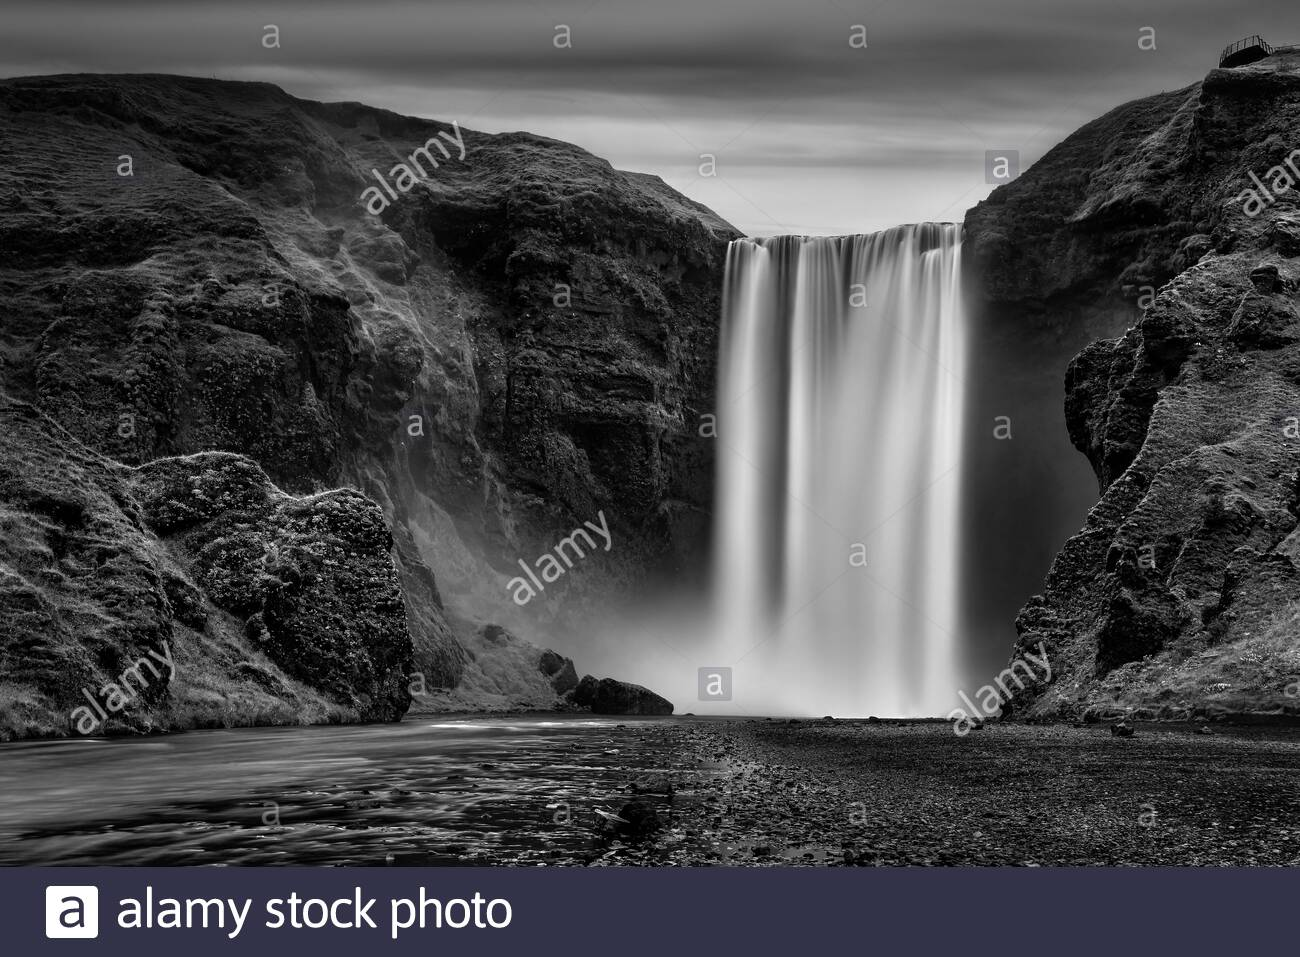 iceland-black-and-white-photograph-of-sk